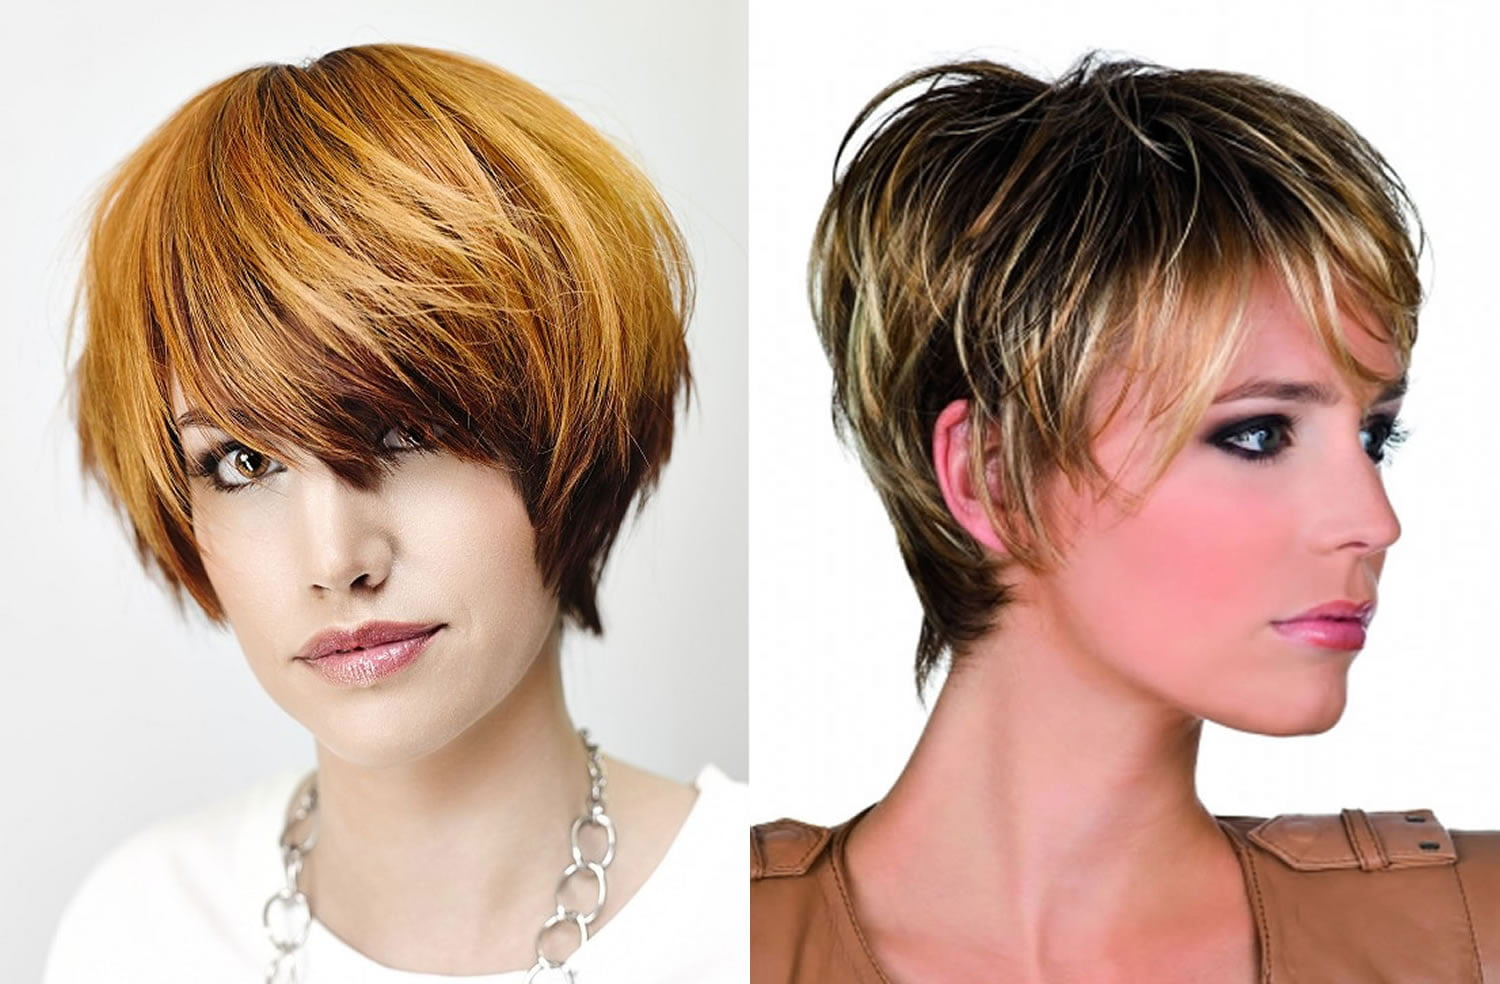 Top 100 Beautiful Short Haircuts for Women 2018 | Images ...